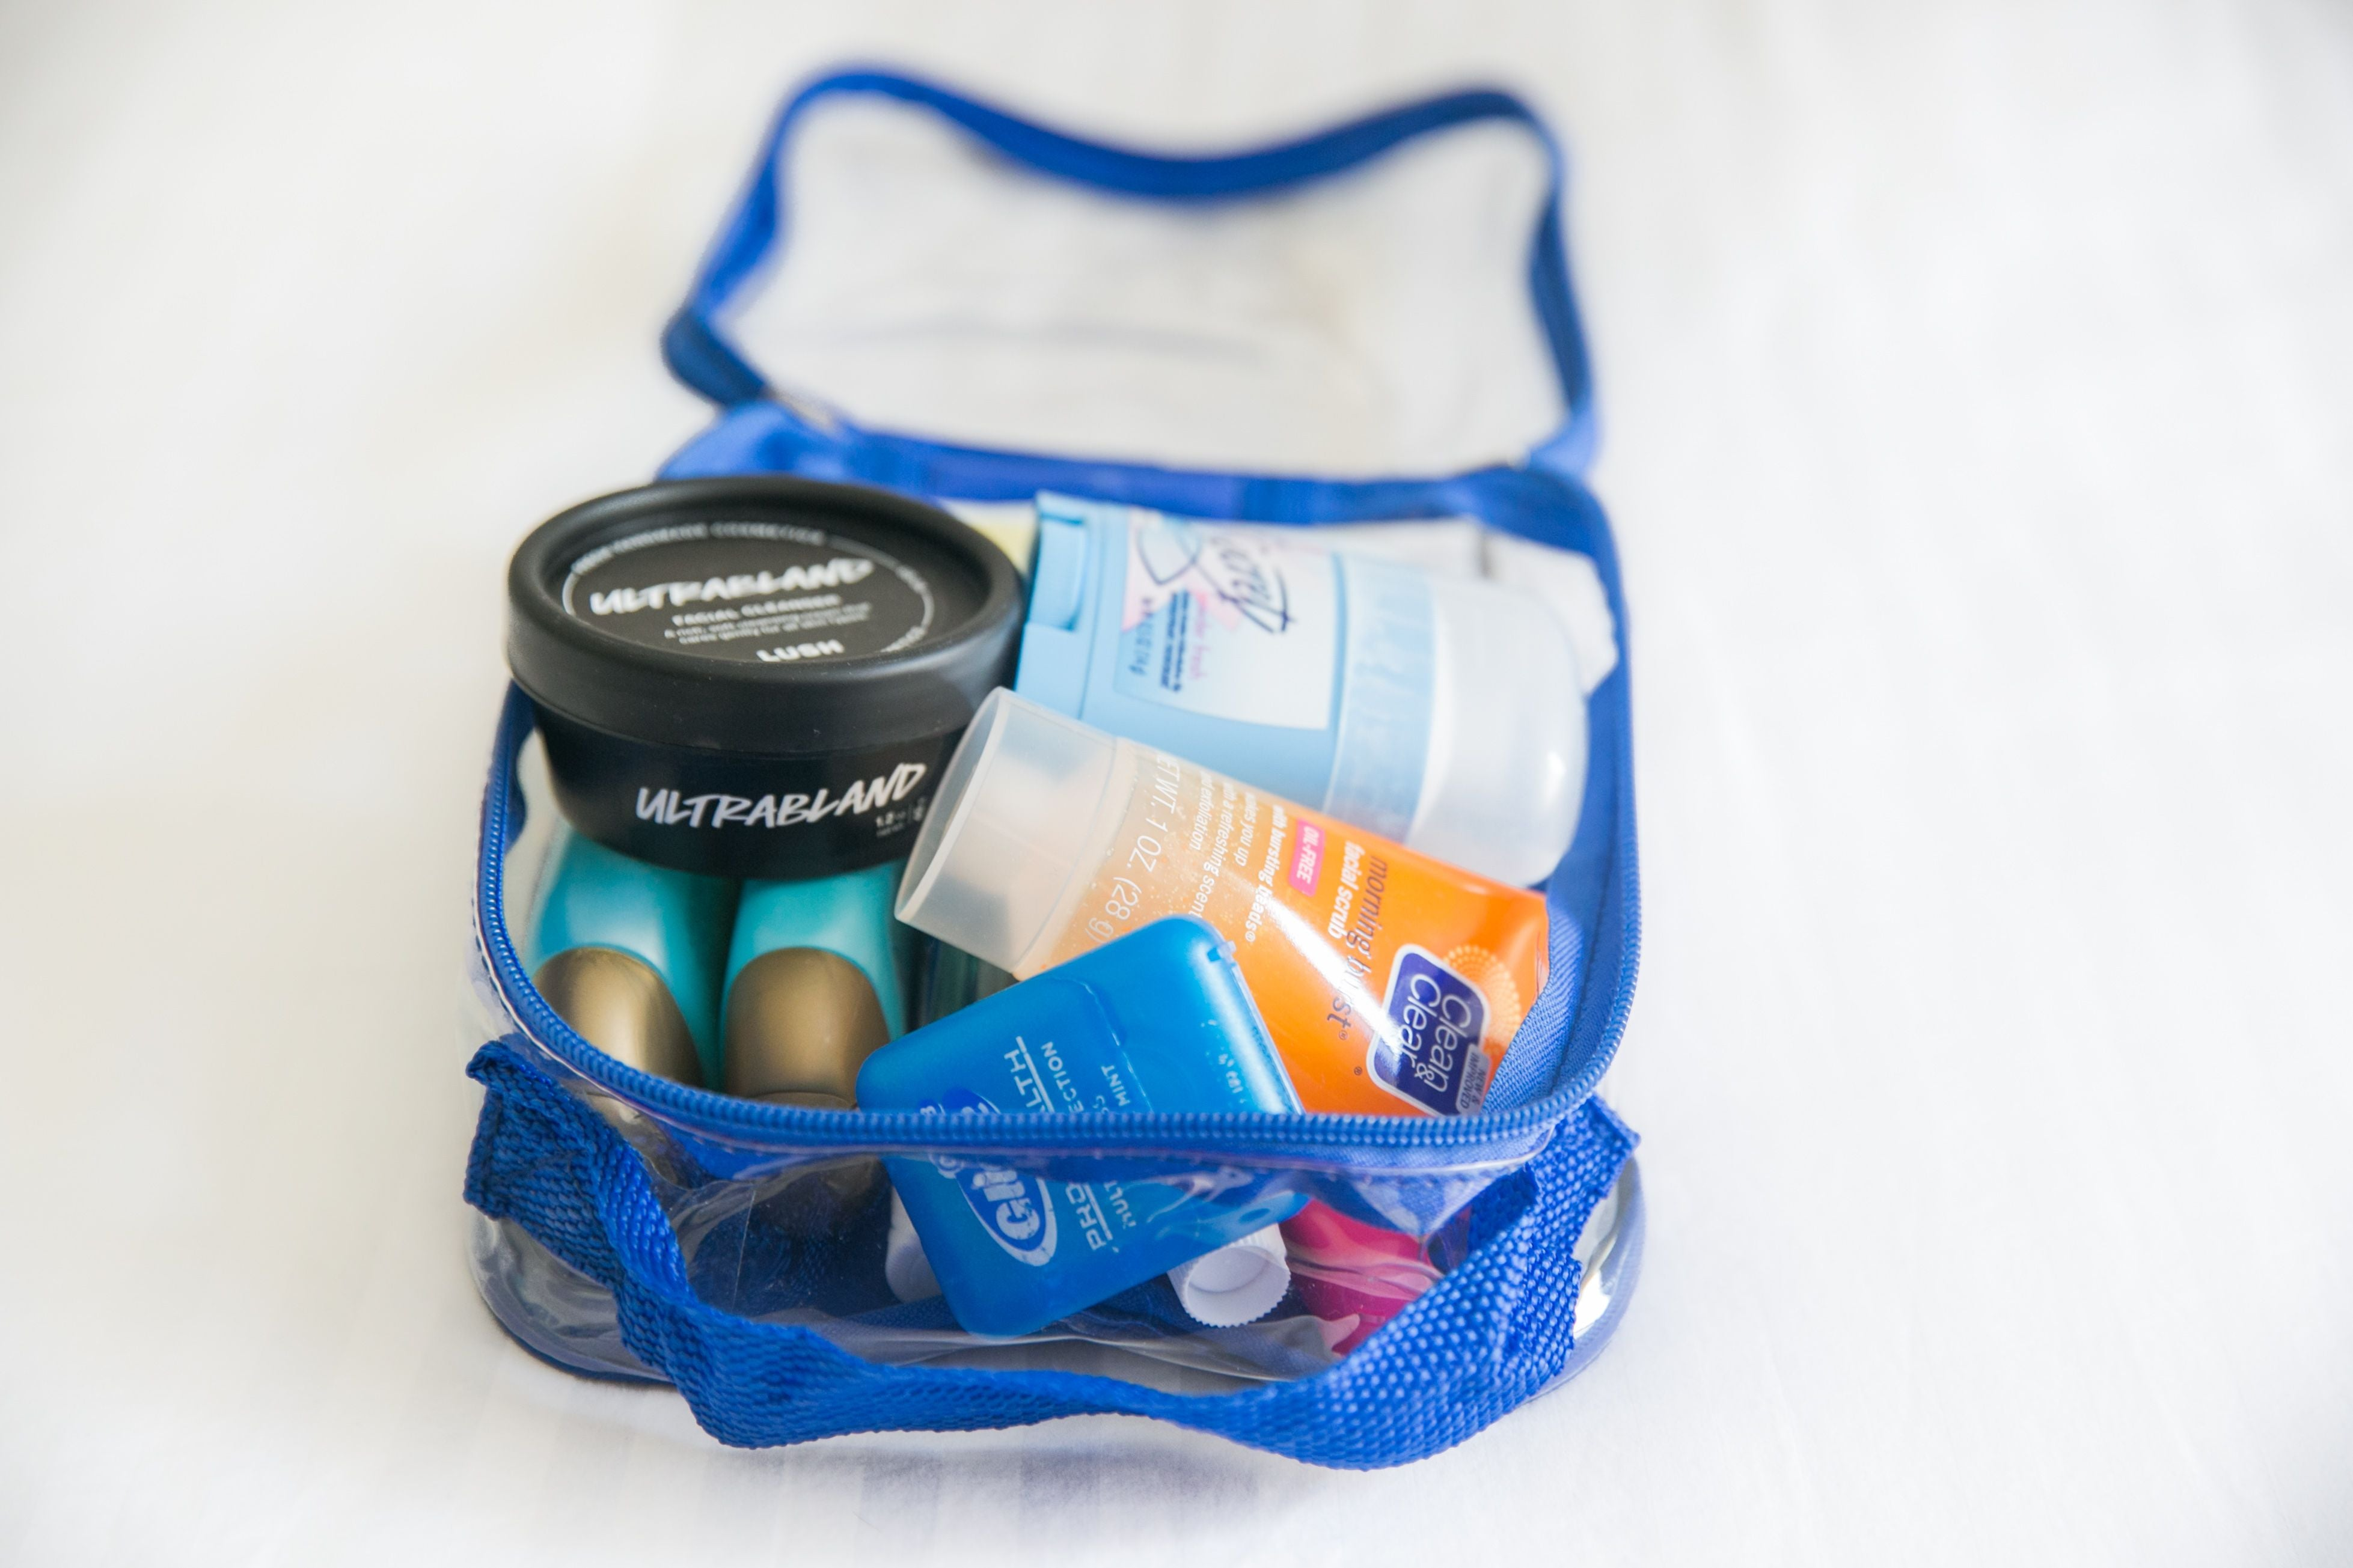 toiletries in a royal blue extra small cube